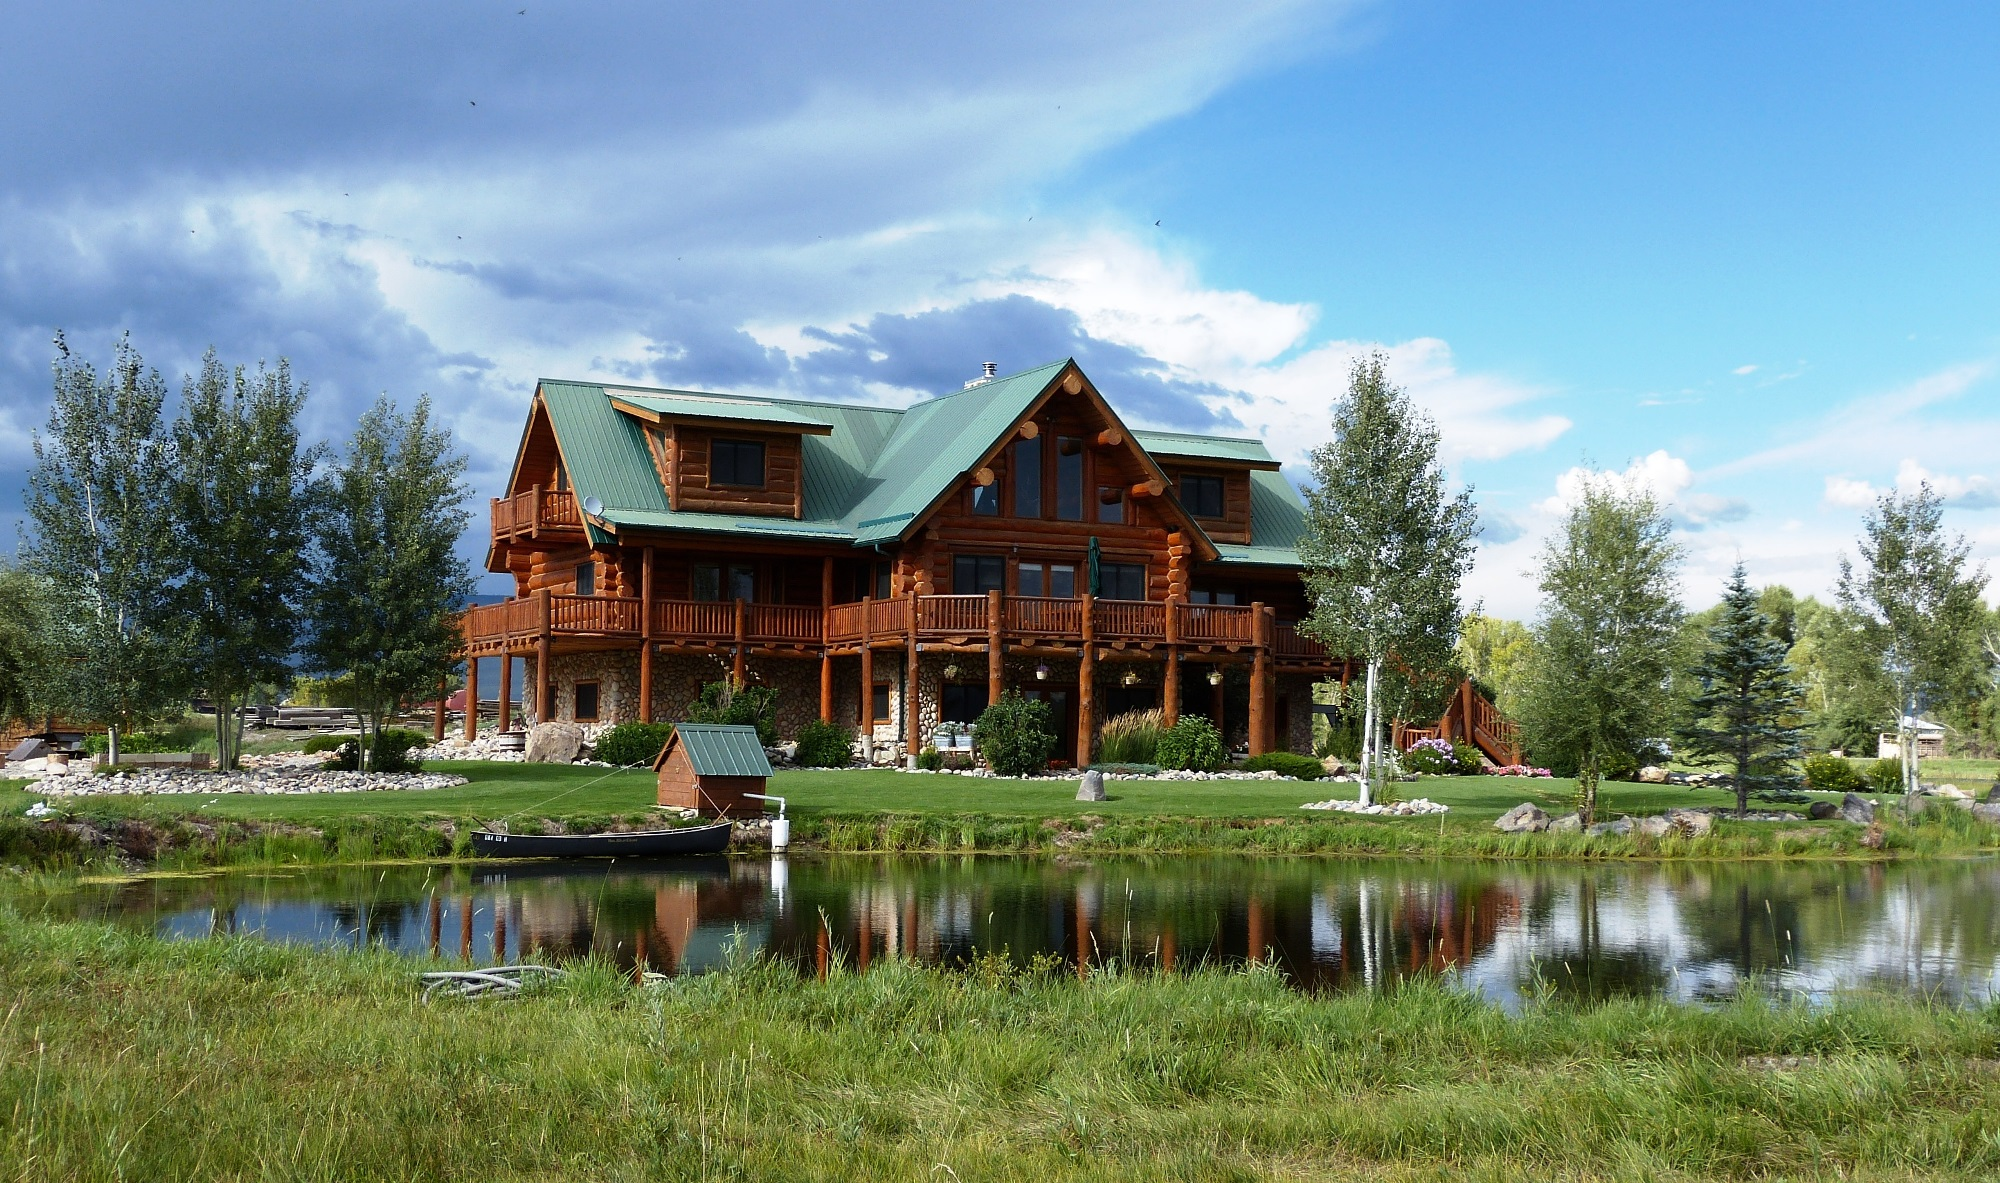 Single Family Home for Sale at Been Dreaming of A Log Home 65 Chekwa Trail Gunnison, Colorado 81230 United States